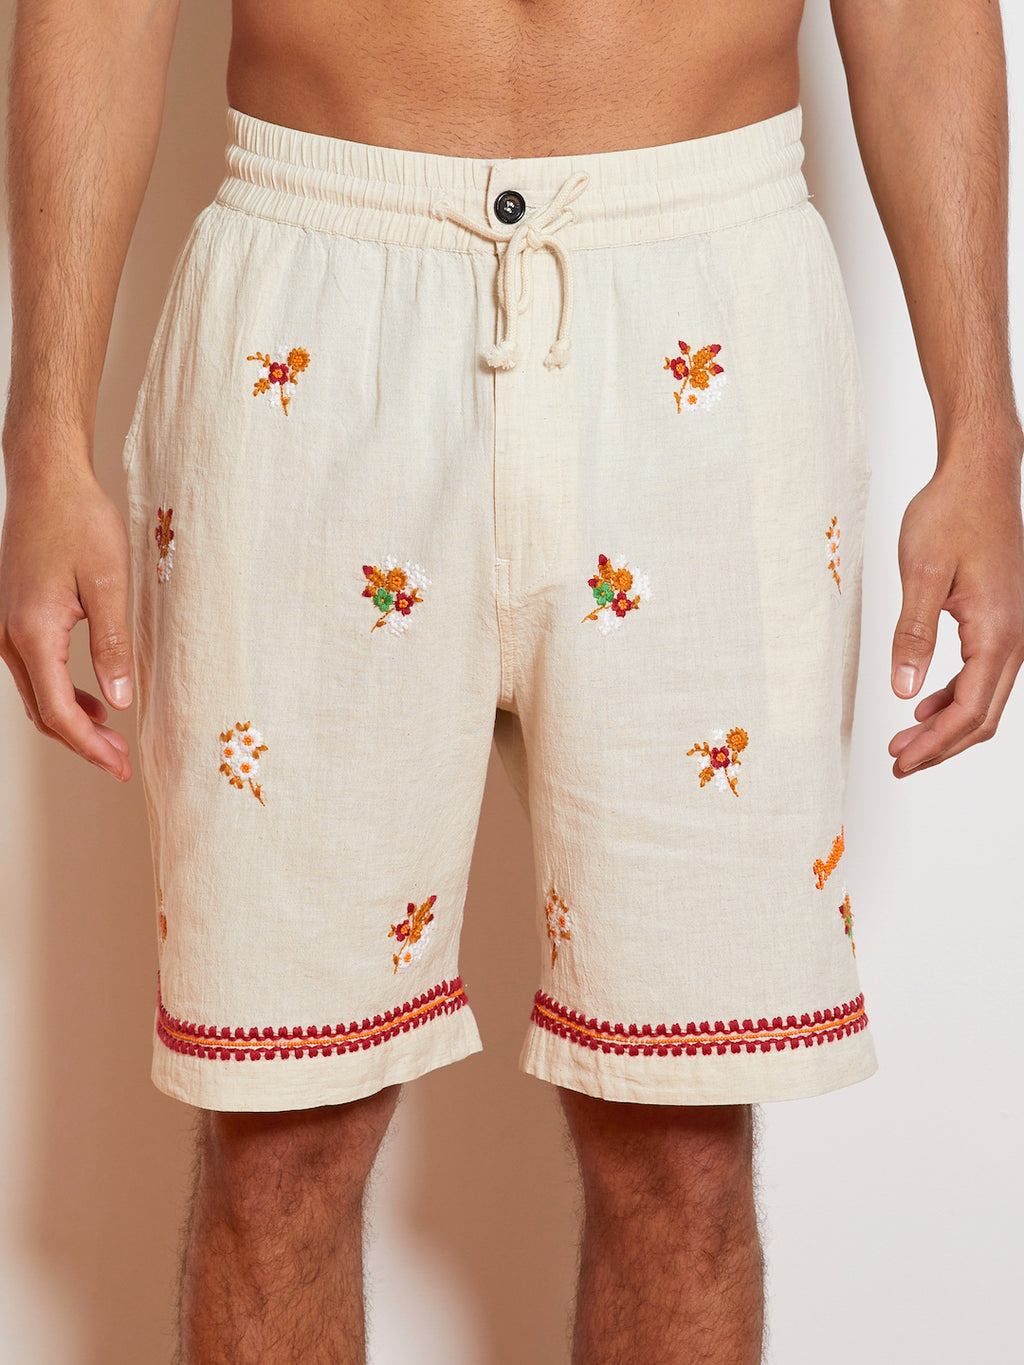 President's Leisure P's Embroidered Bermuda Short, Natural